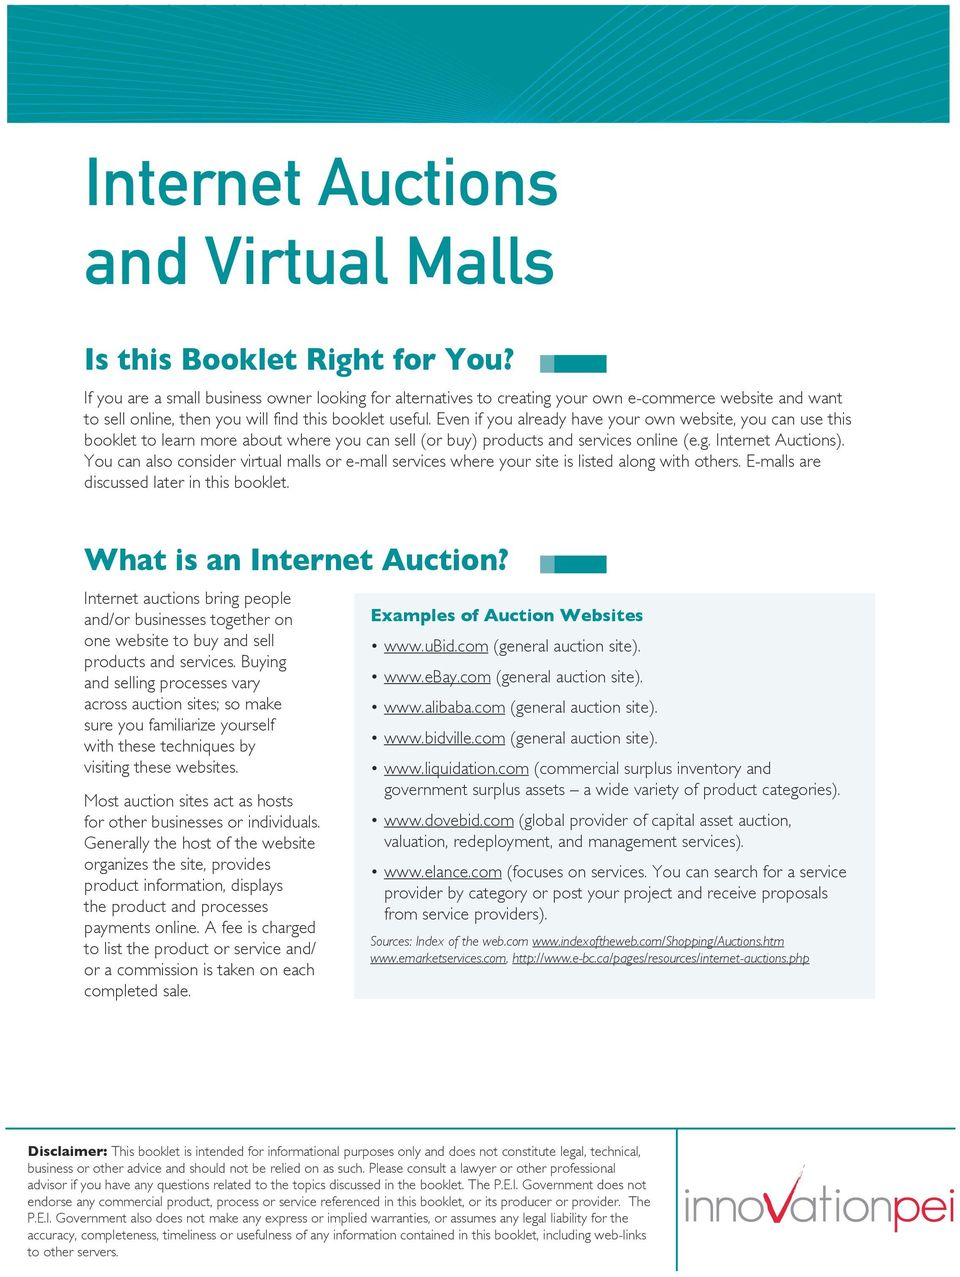 Even if you already have your own website, you can use this booklet to learn more about where you can sell (or buy) products and services online (e.g. Internet Auctions).